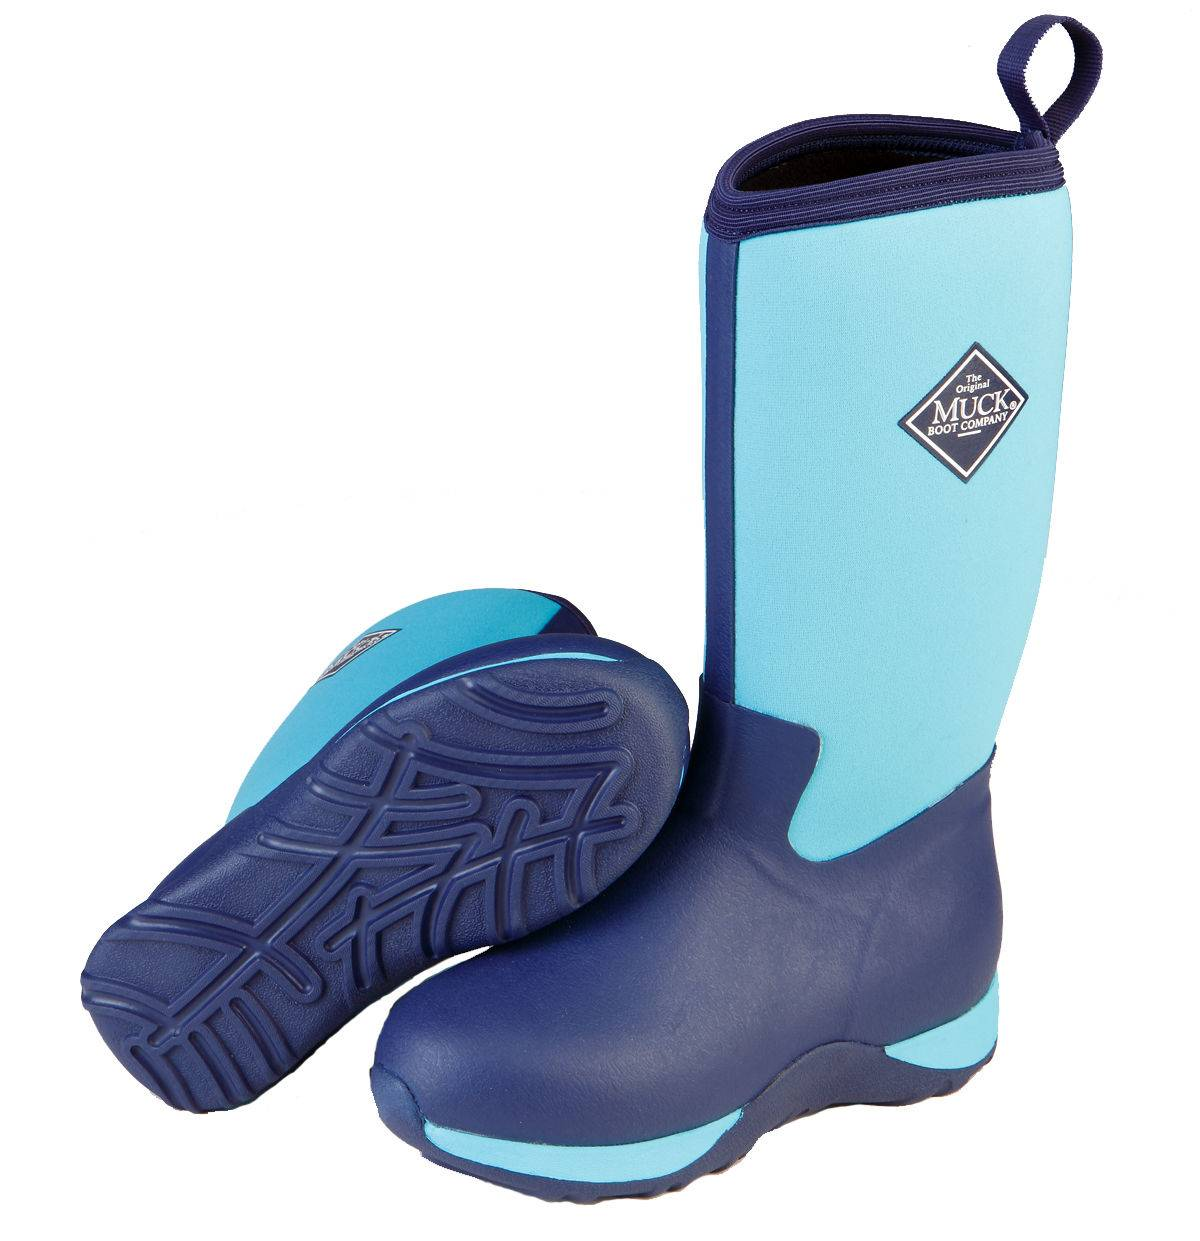 Muck Boots Arctic Adventure - Kids - Blue/Navy